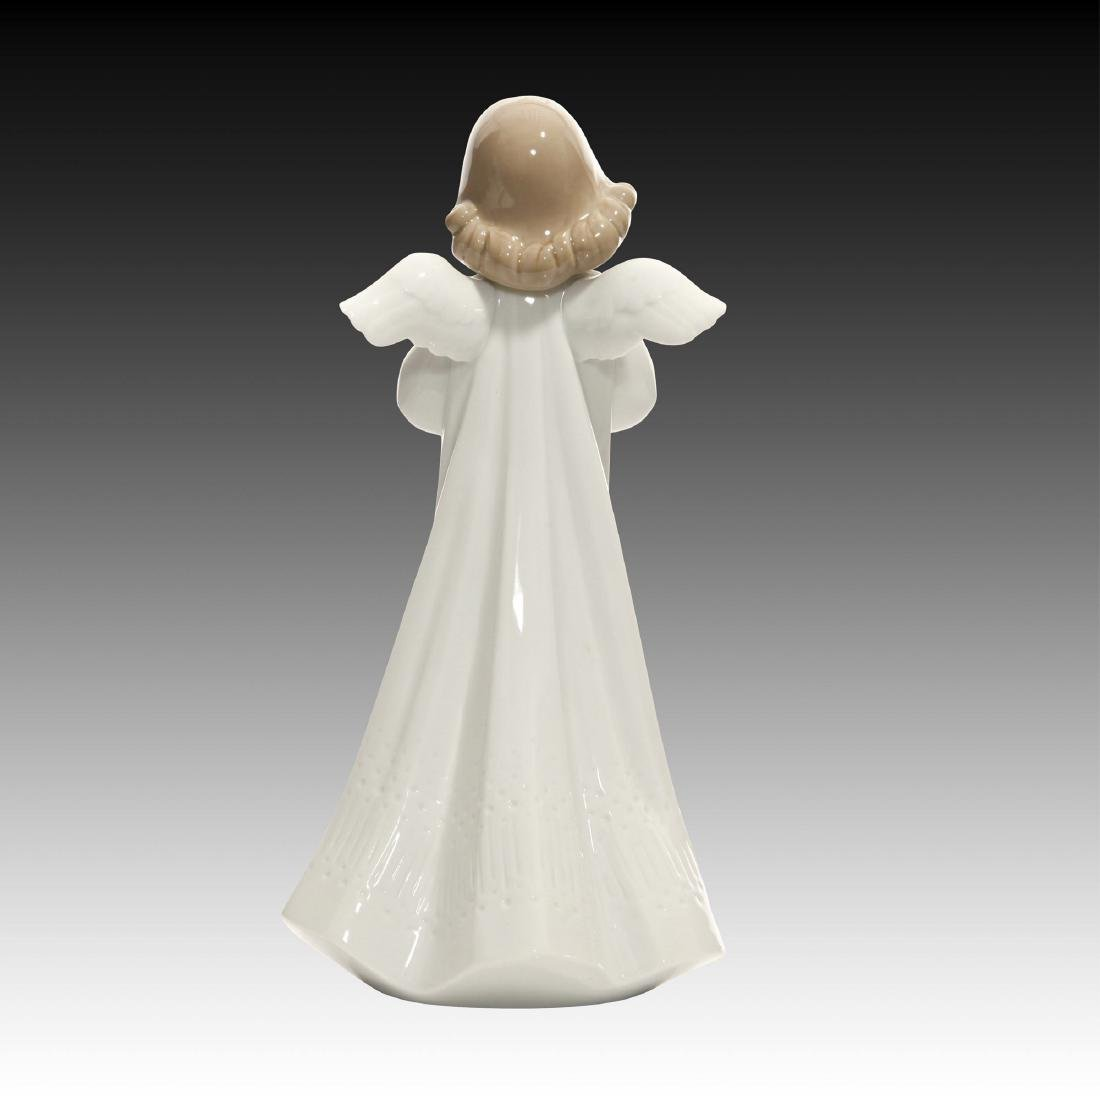 LLADRO AN ANGEL'S WISH FIGURINE 6788 - 2